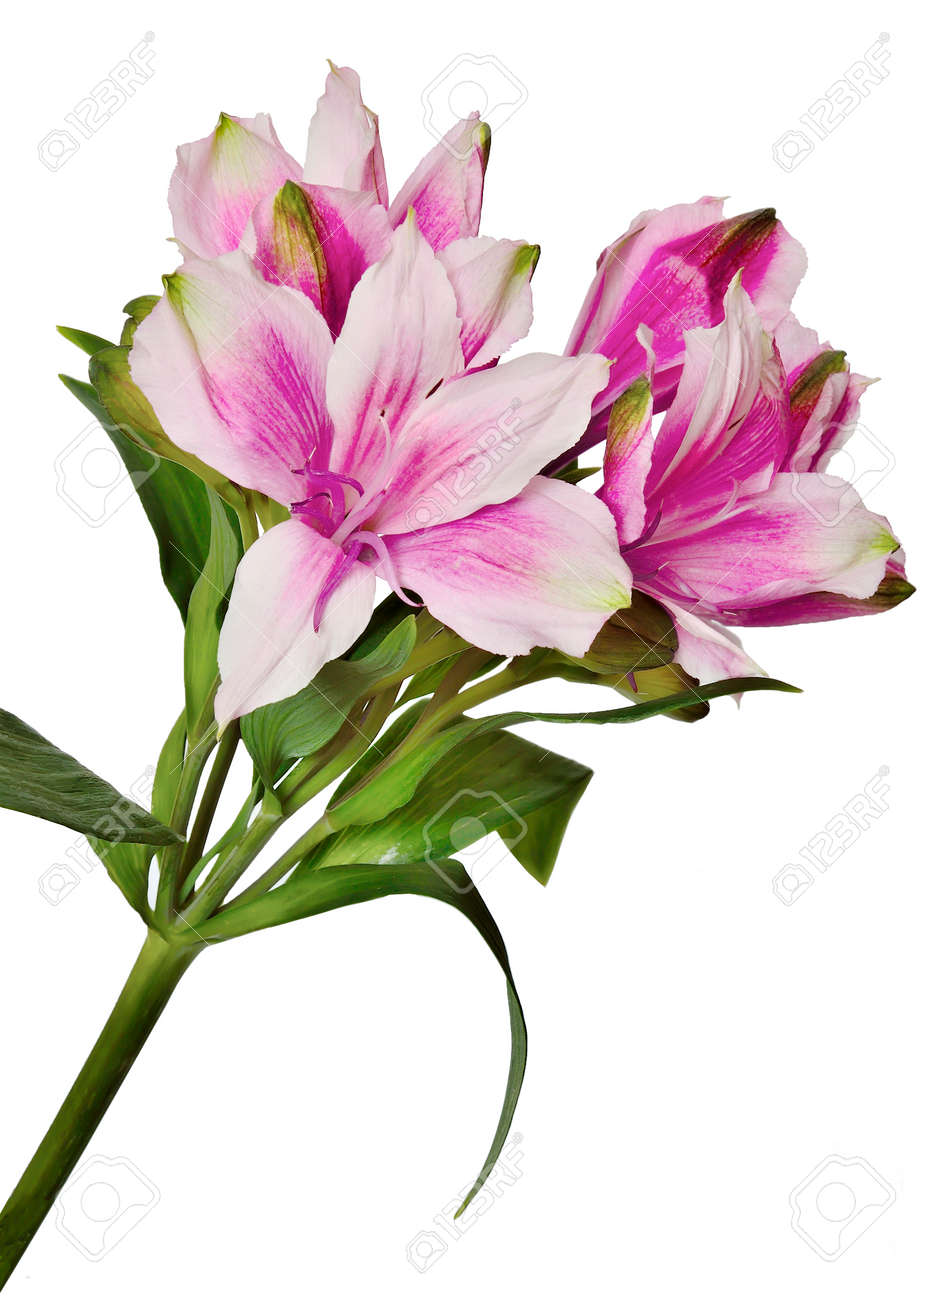 Delicate Pink Flowers Isolated On White Background Stock Photo